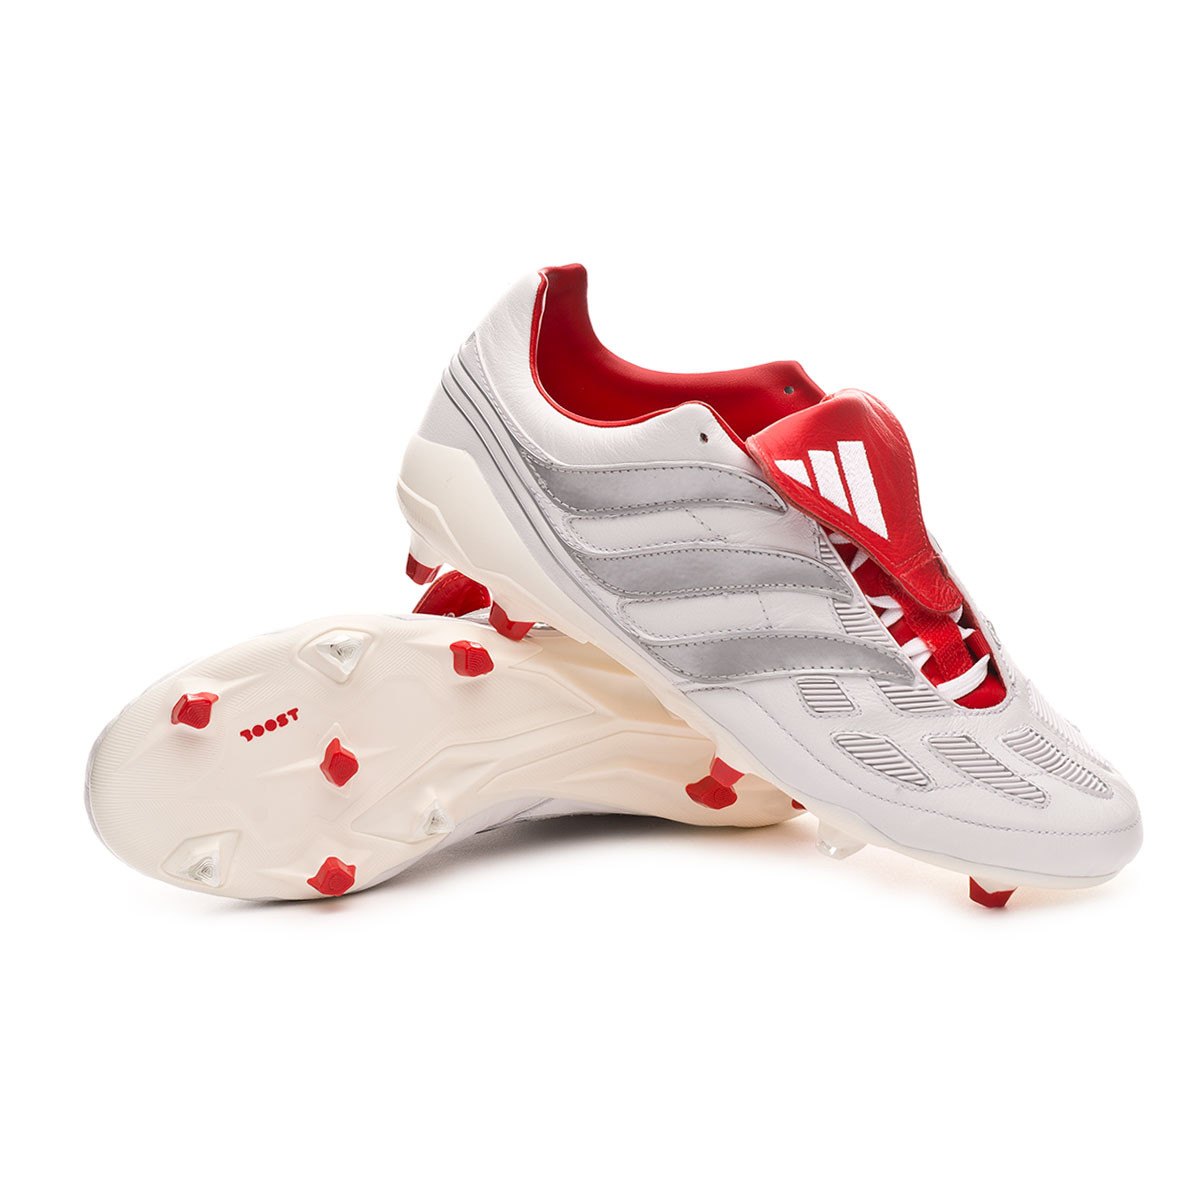 ciervo Hollywood envidia  Football Boots adidas Predator Precision FG DB White-Silver metallic- Predator Red - Football store Fútbol Emotion